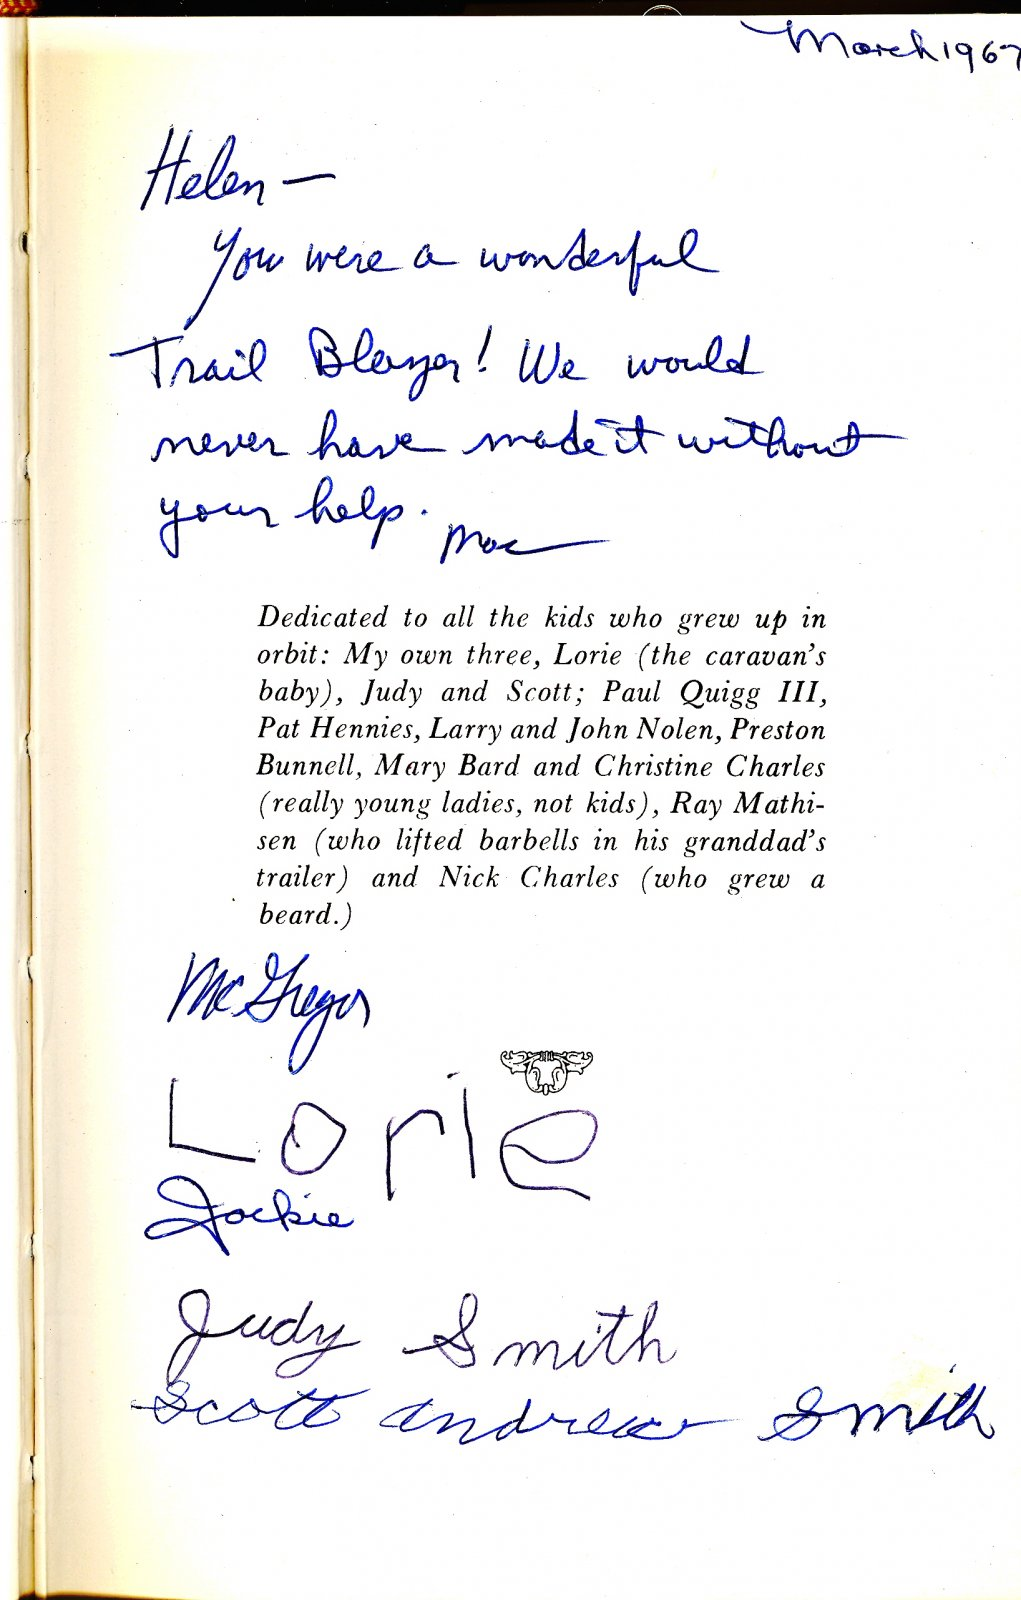 Click image for larger version  Name:Thank you Marco Polo - Autograph from Mac to Helen scan0027.jpg Views:76 Size:194.4 KB ID:65896